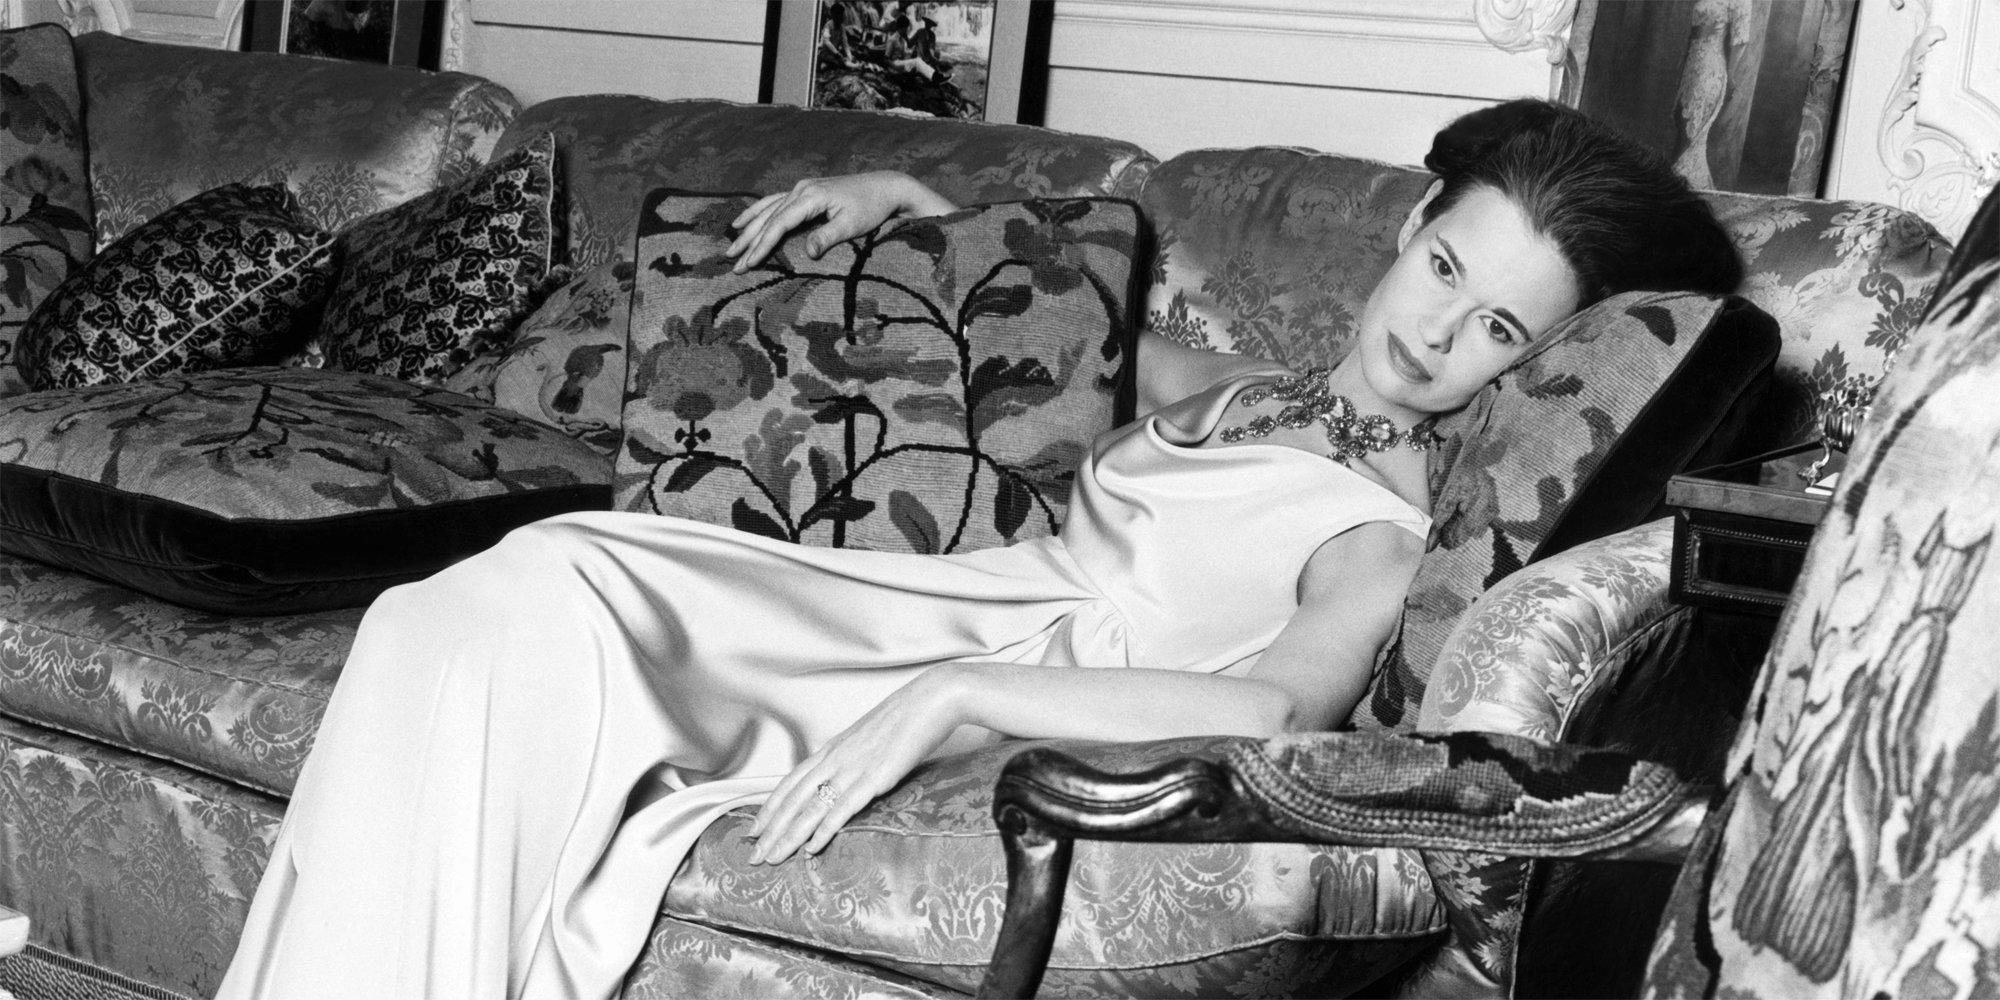 Gloria Vanderbilt, sister of Thelma Furness (ex-lover of King Edward VIII) died of stomach cancer